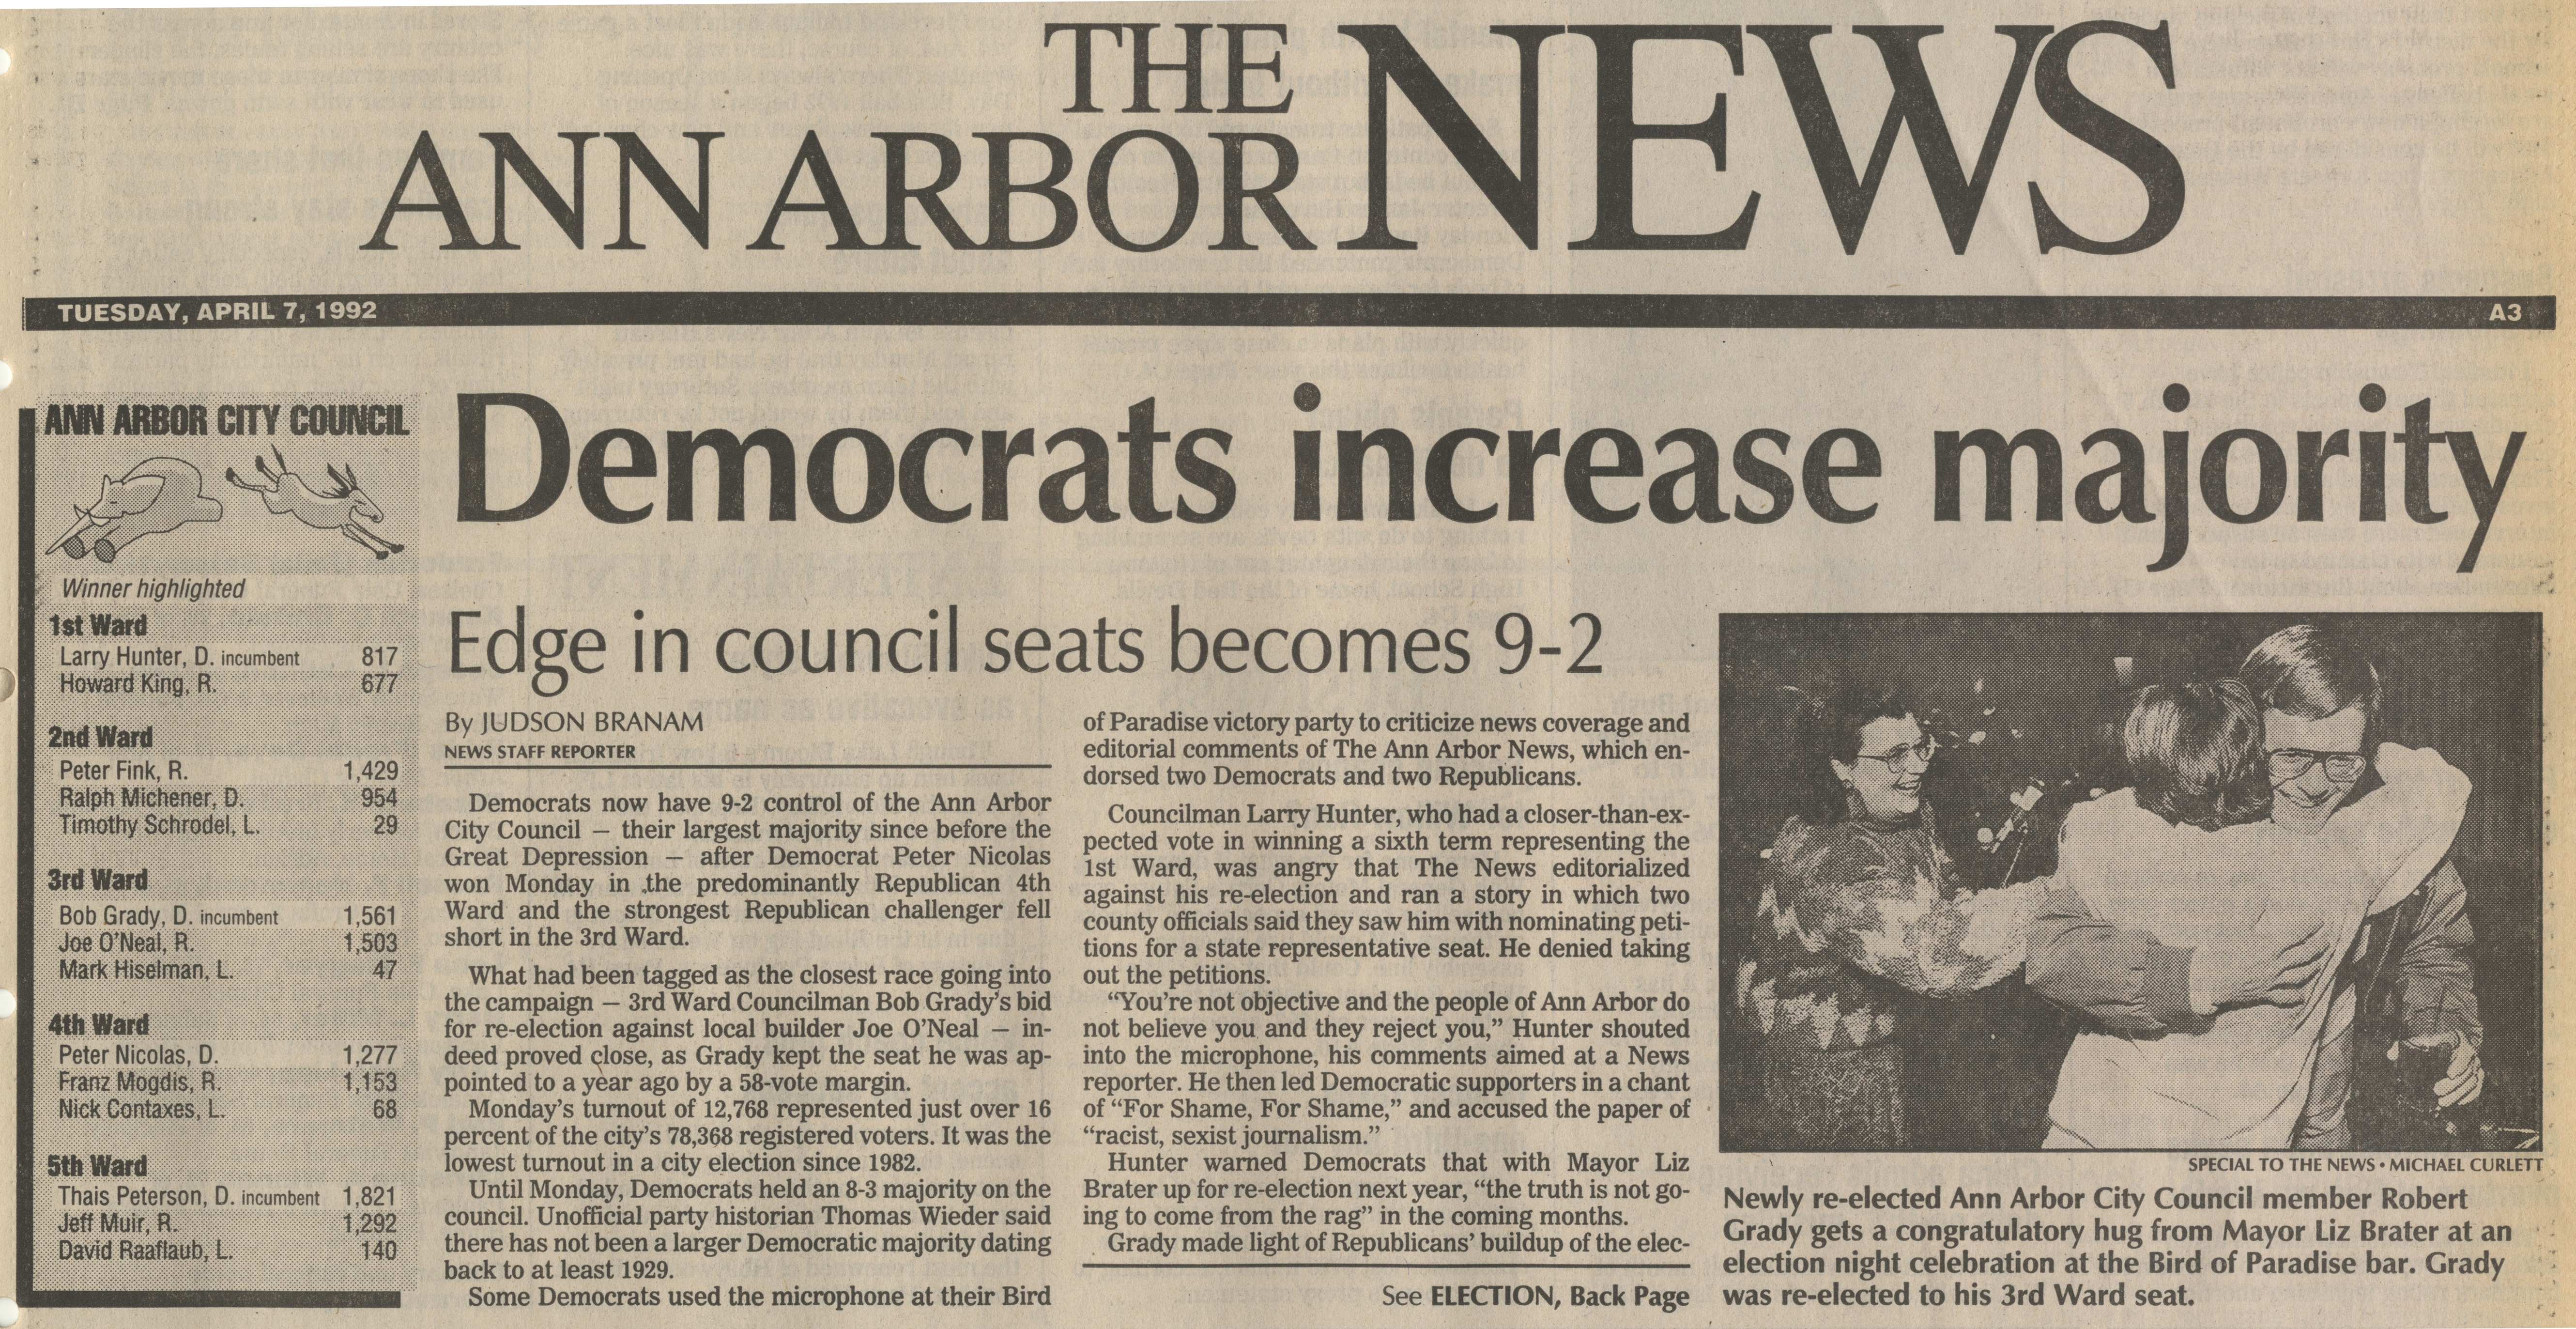 Democrats Increase Majority image